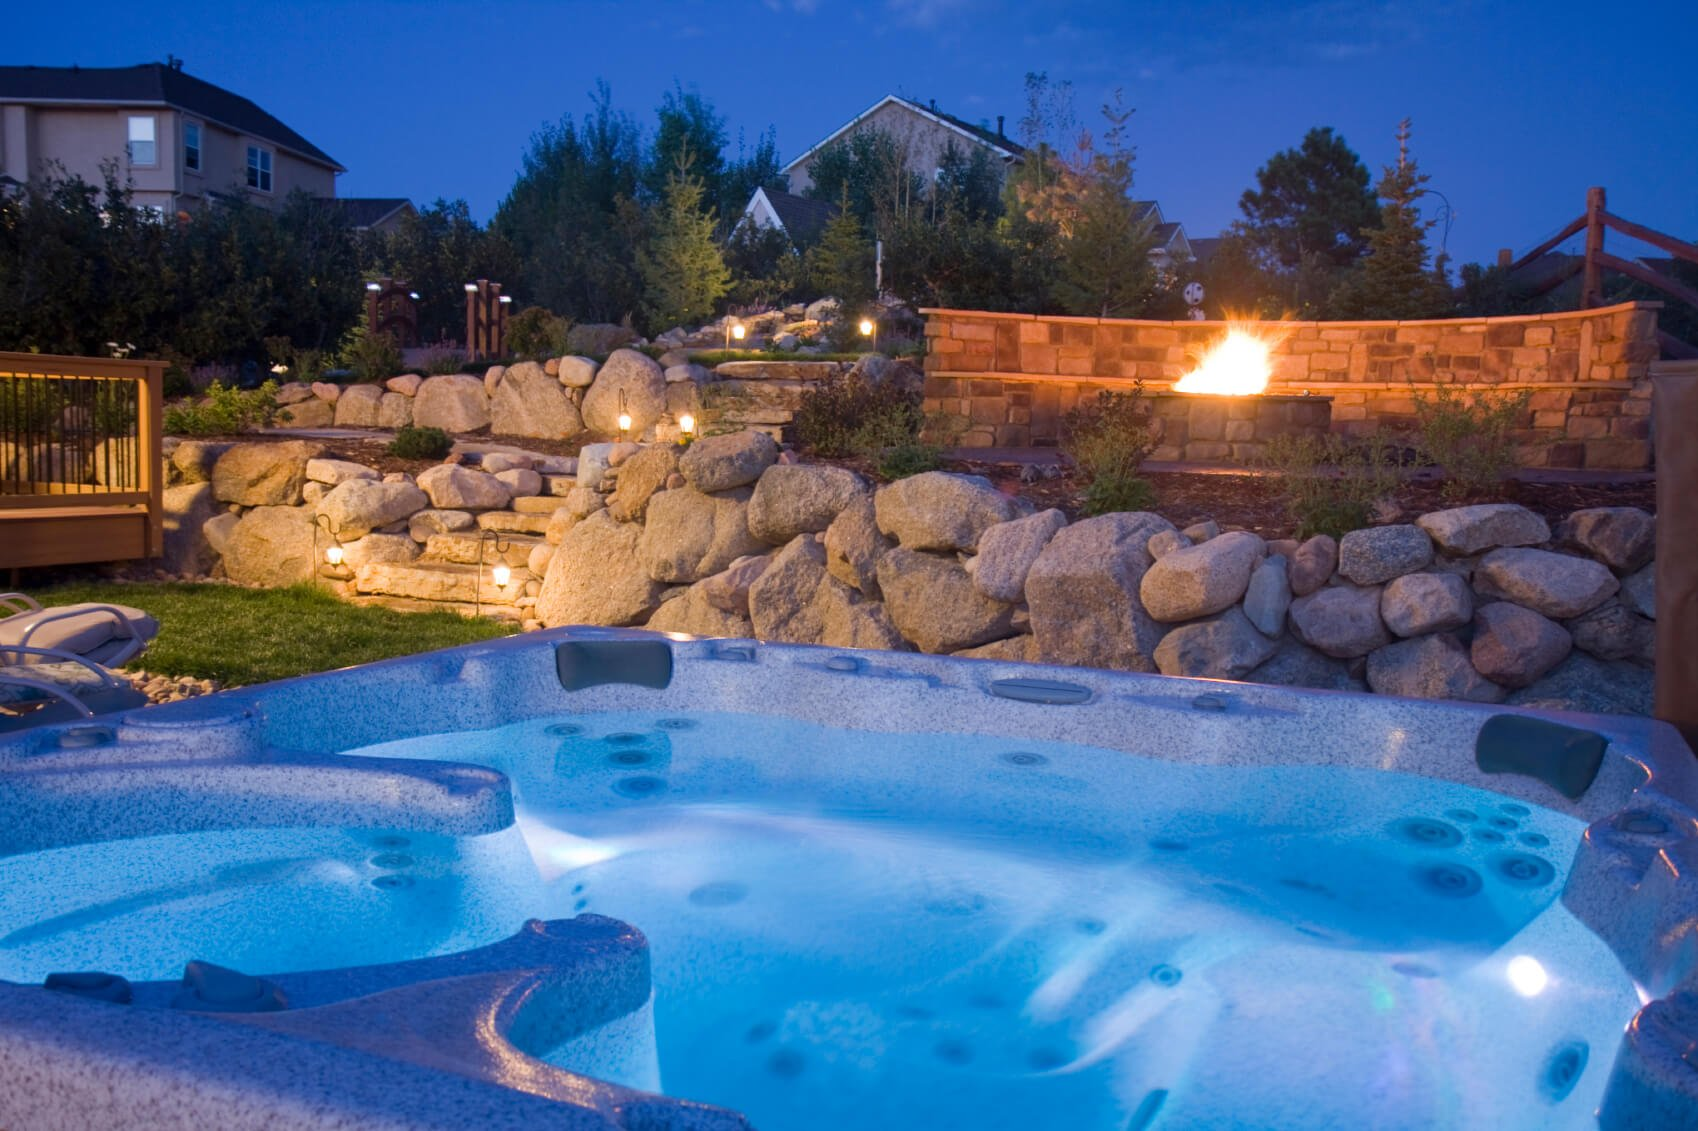 If you have put in a great deal of work into your landscaping and lighting of your outside area, the best way to enjoy it is to hop into a hot tub, soak in the warm water, and take it all in.